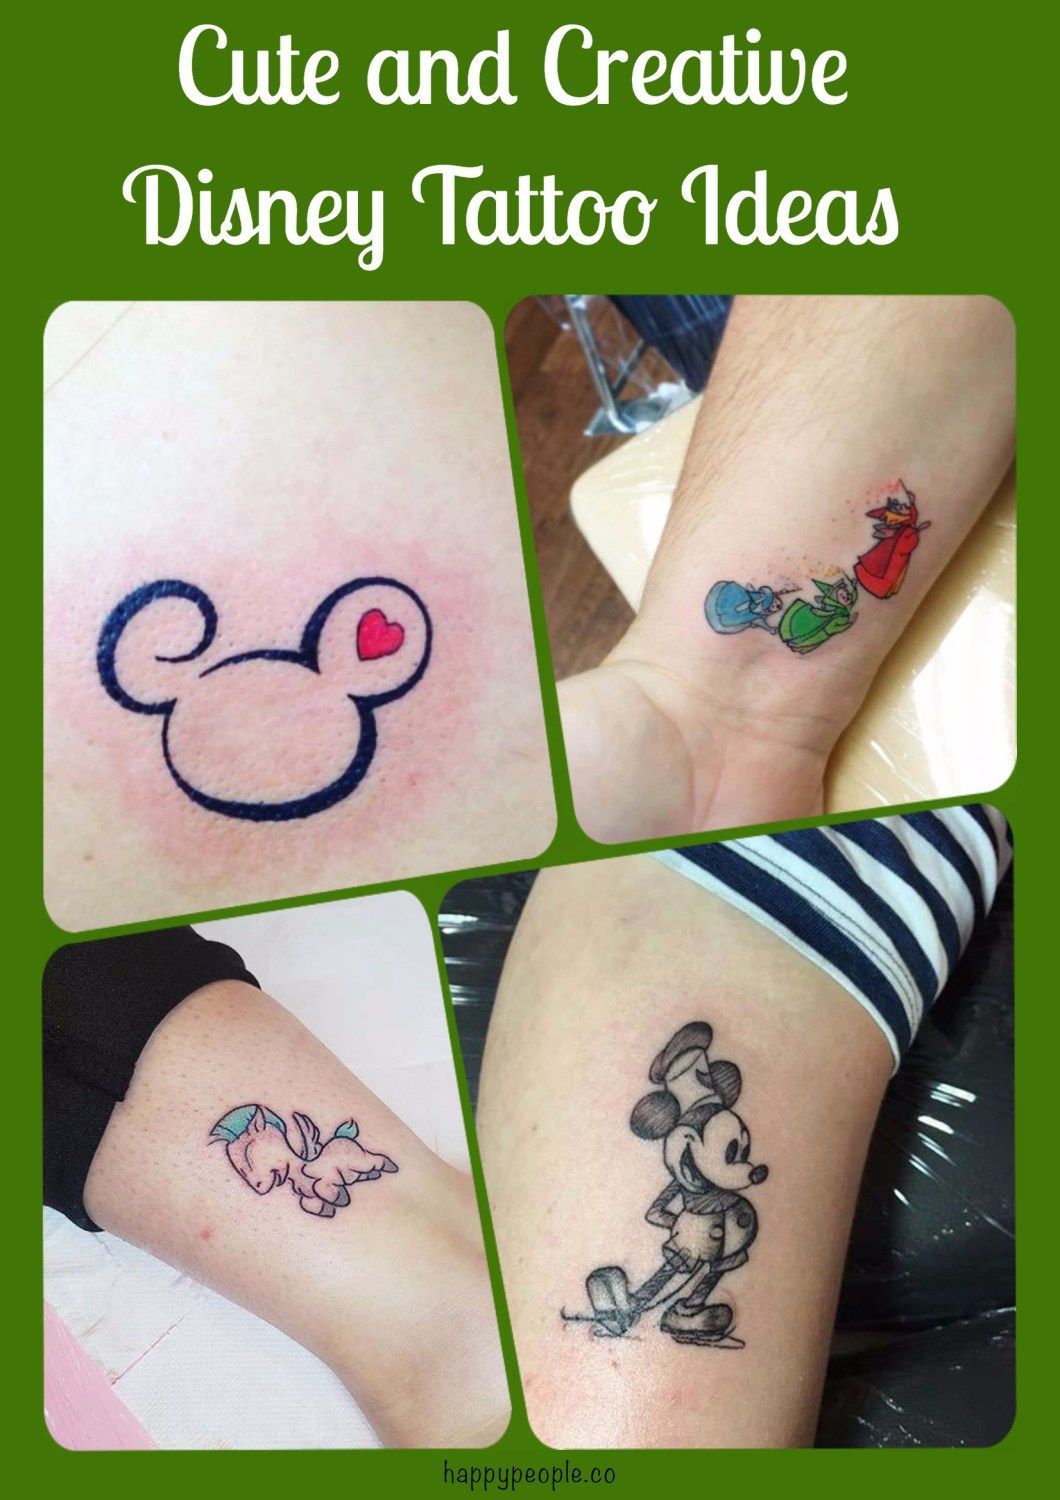 Cleaver Tattoos: 17 Clever Tattoo Ideas For Every Disney Lover